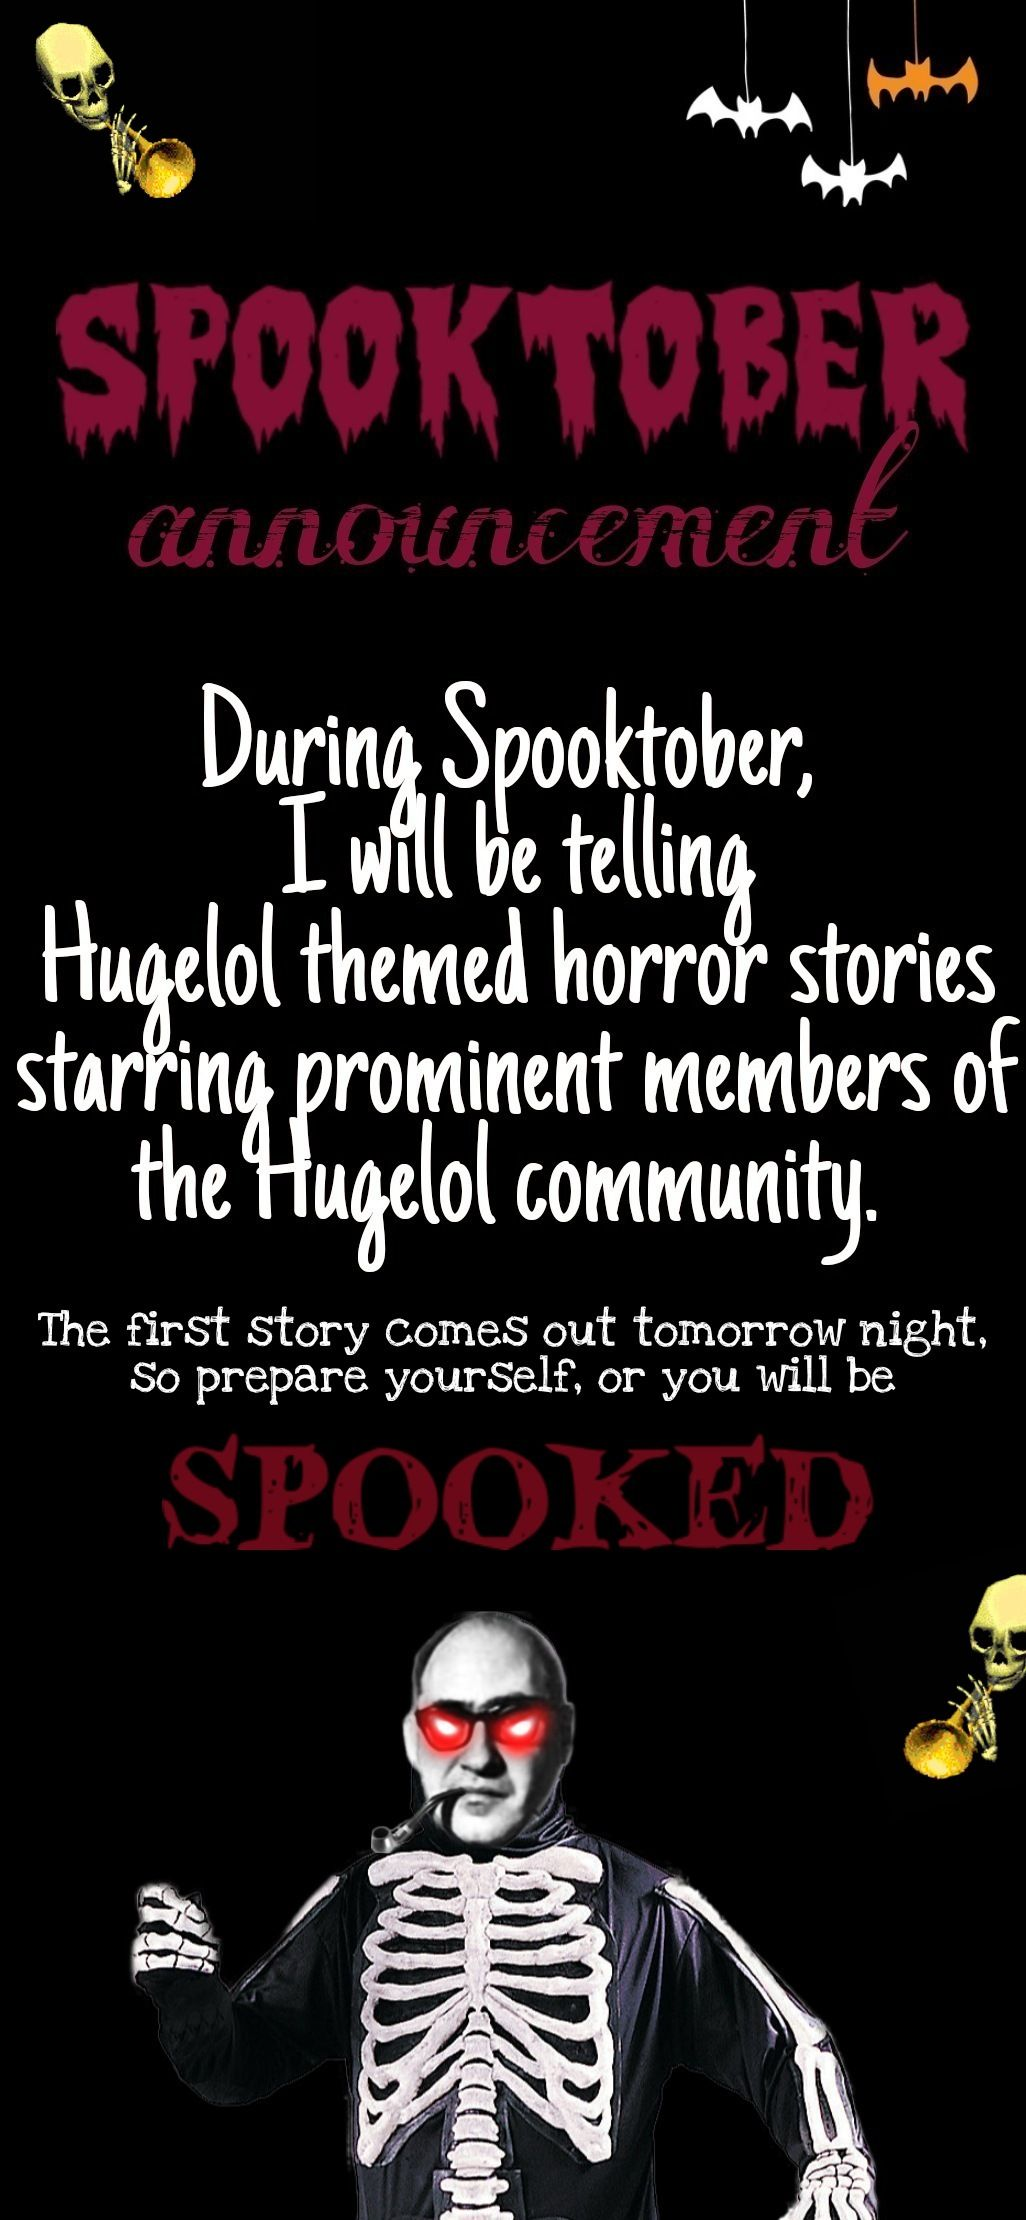 Spooky Spooktober everyone! Stay tuned for horror stories starring your favorite memelords